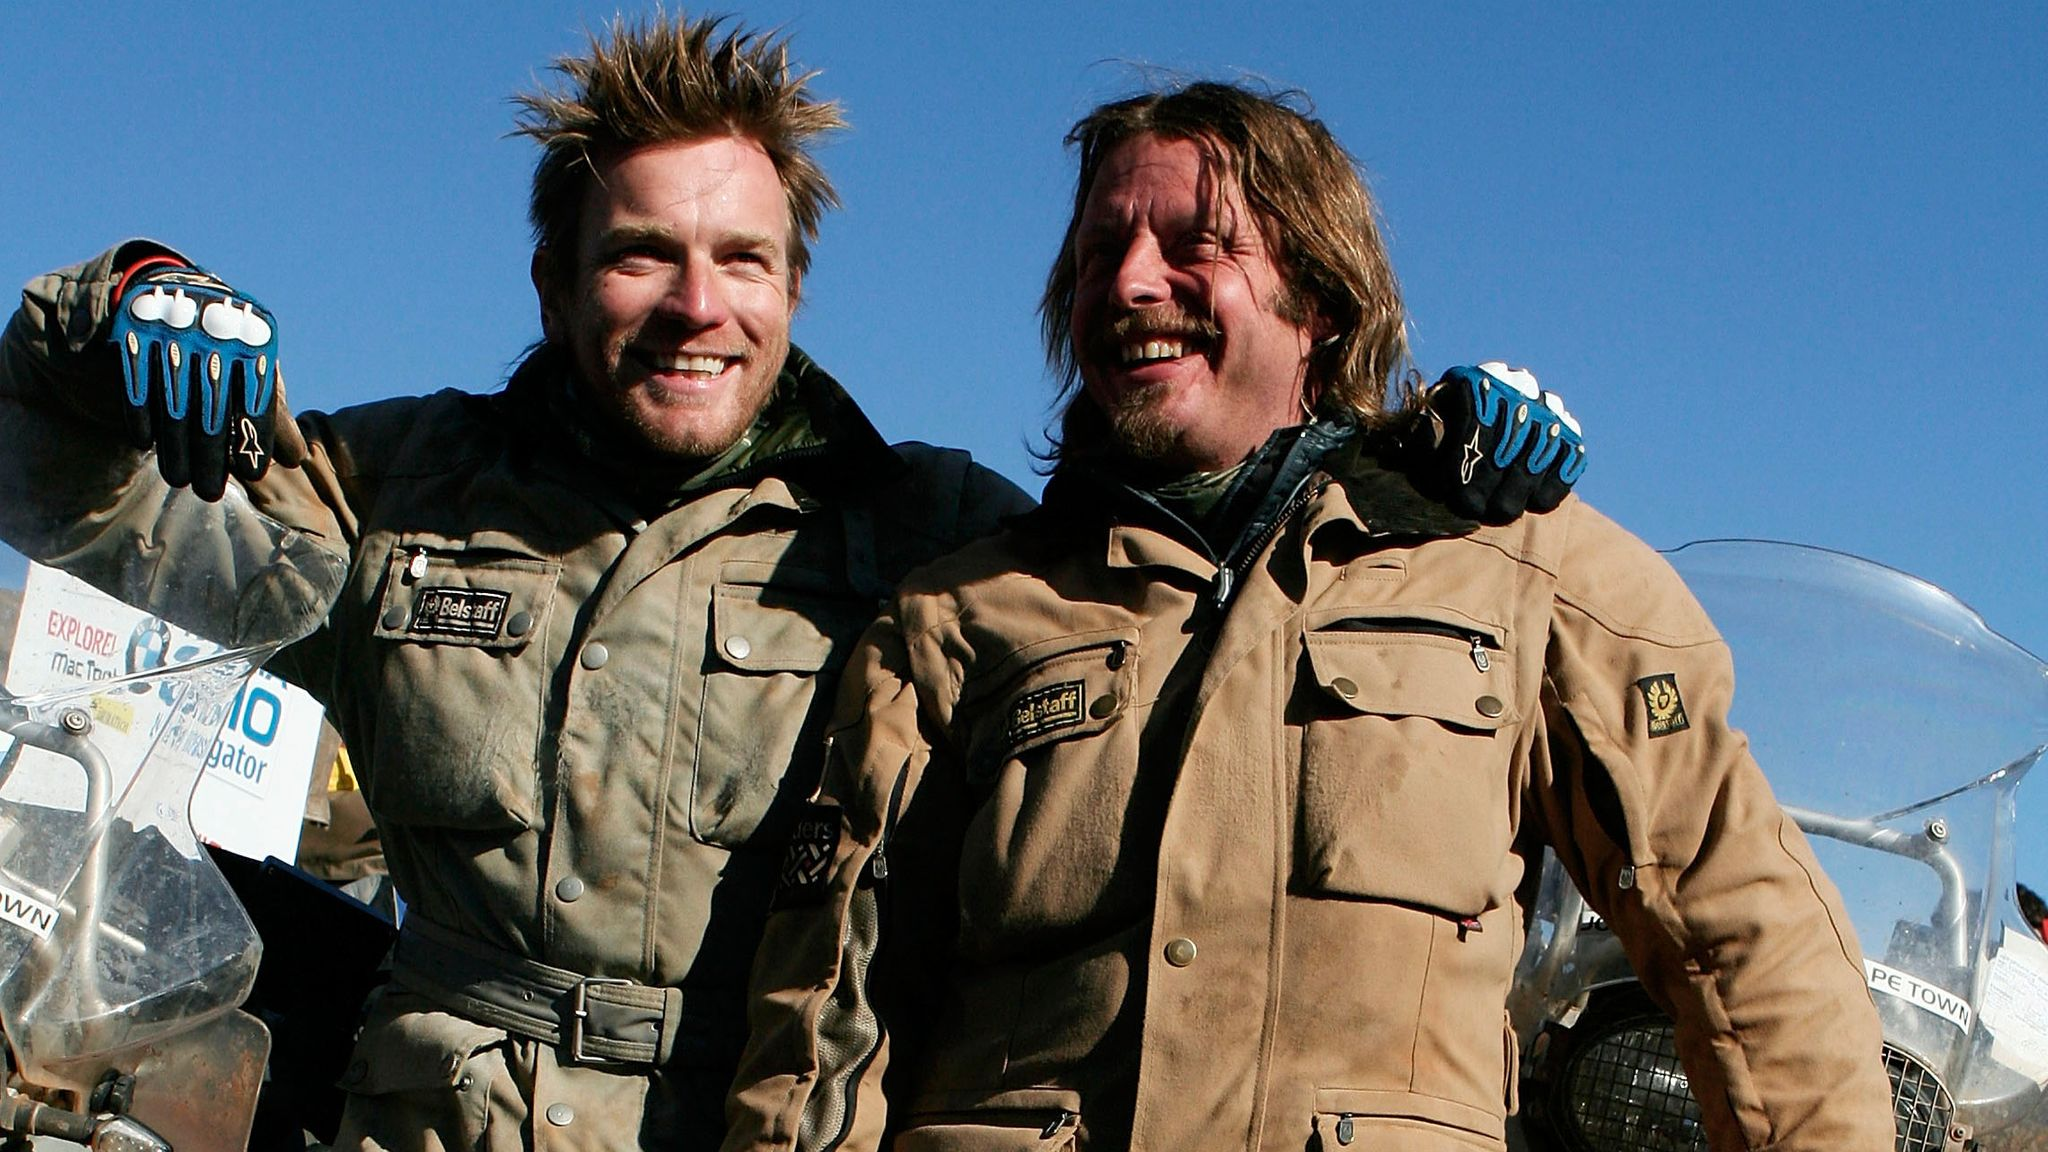 The windswept pair mark the end of The Long Way Down in 2007